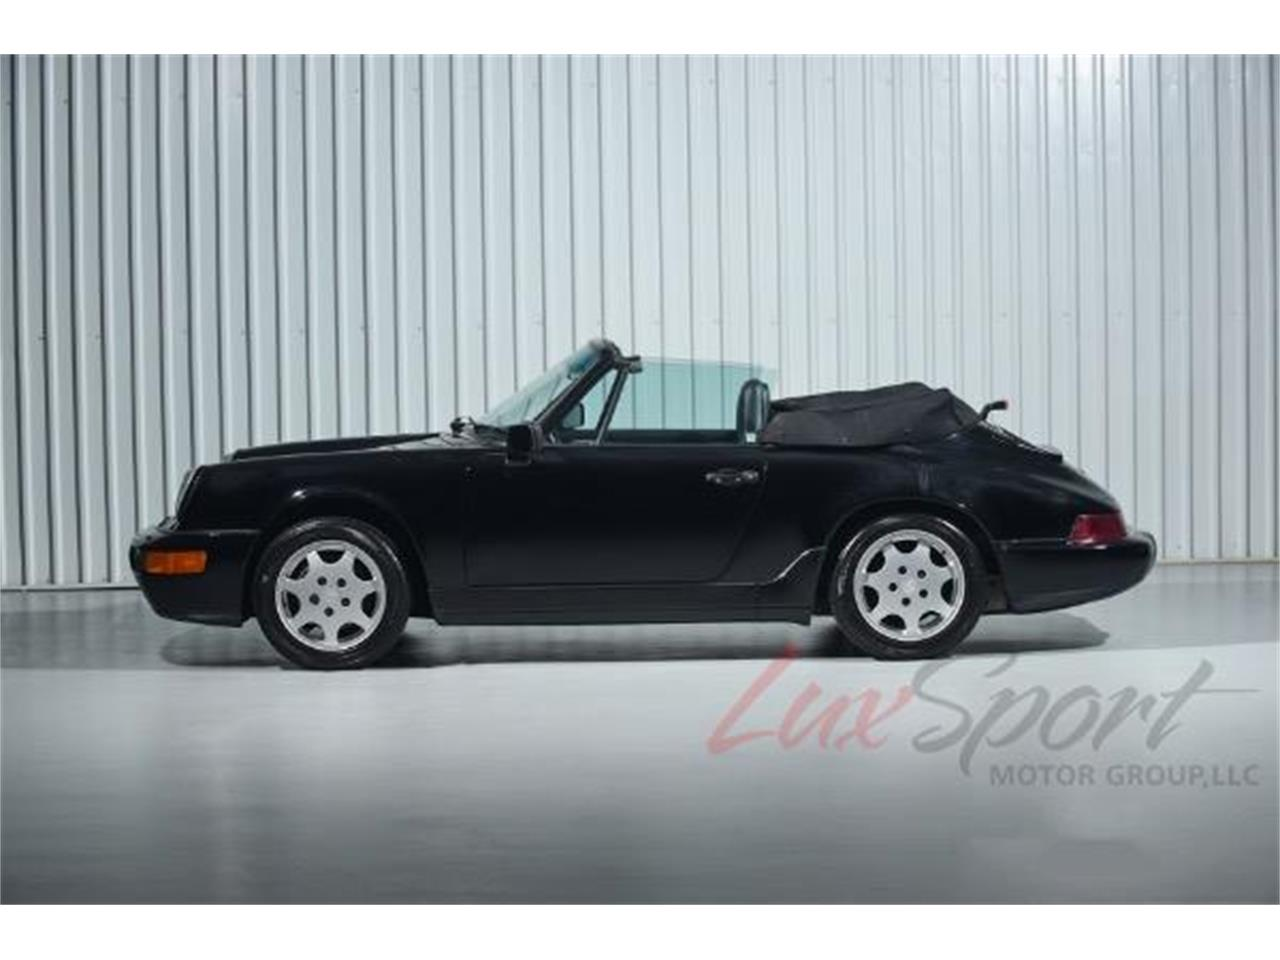 Large Picture of '90 Porsche 964 Carrera 4 Cabriolet - $39,995.00 Offered by LuxSport Motor Group, LLC - MGT0